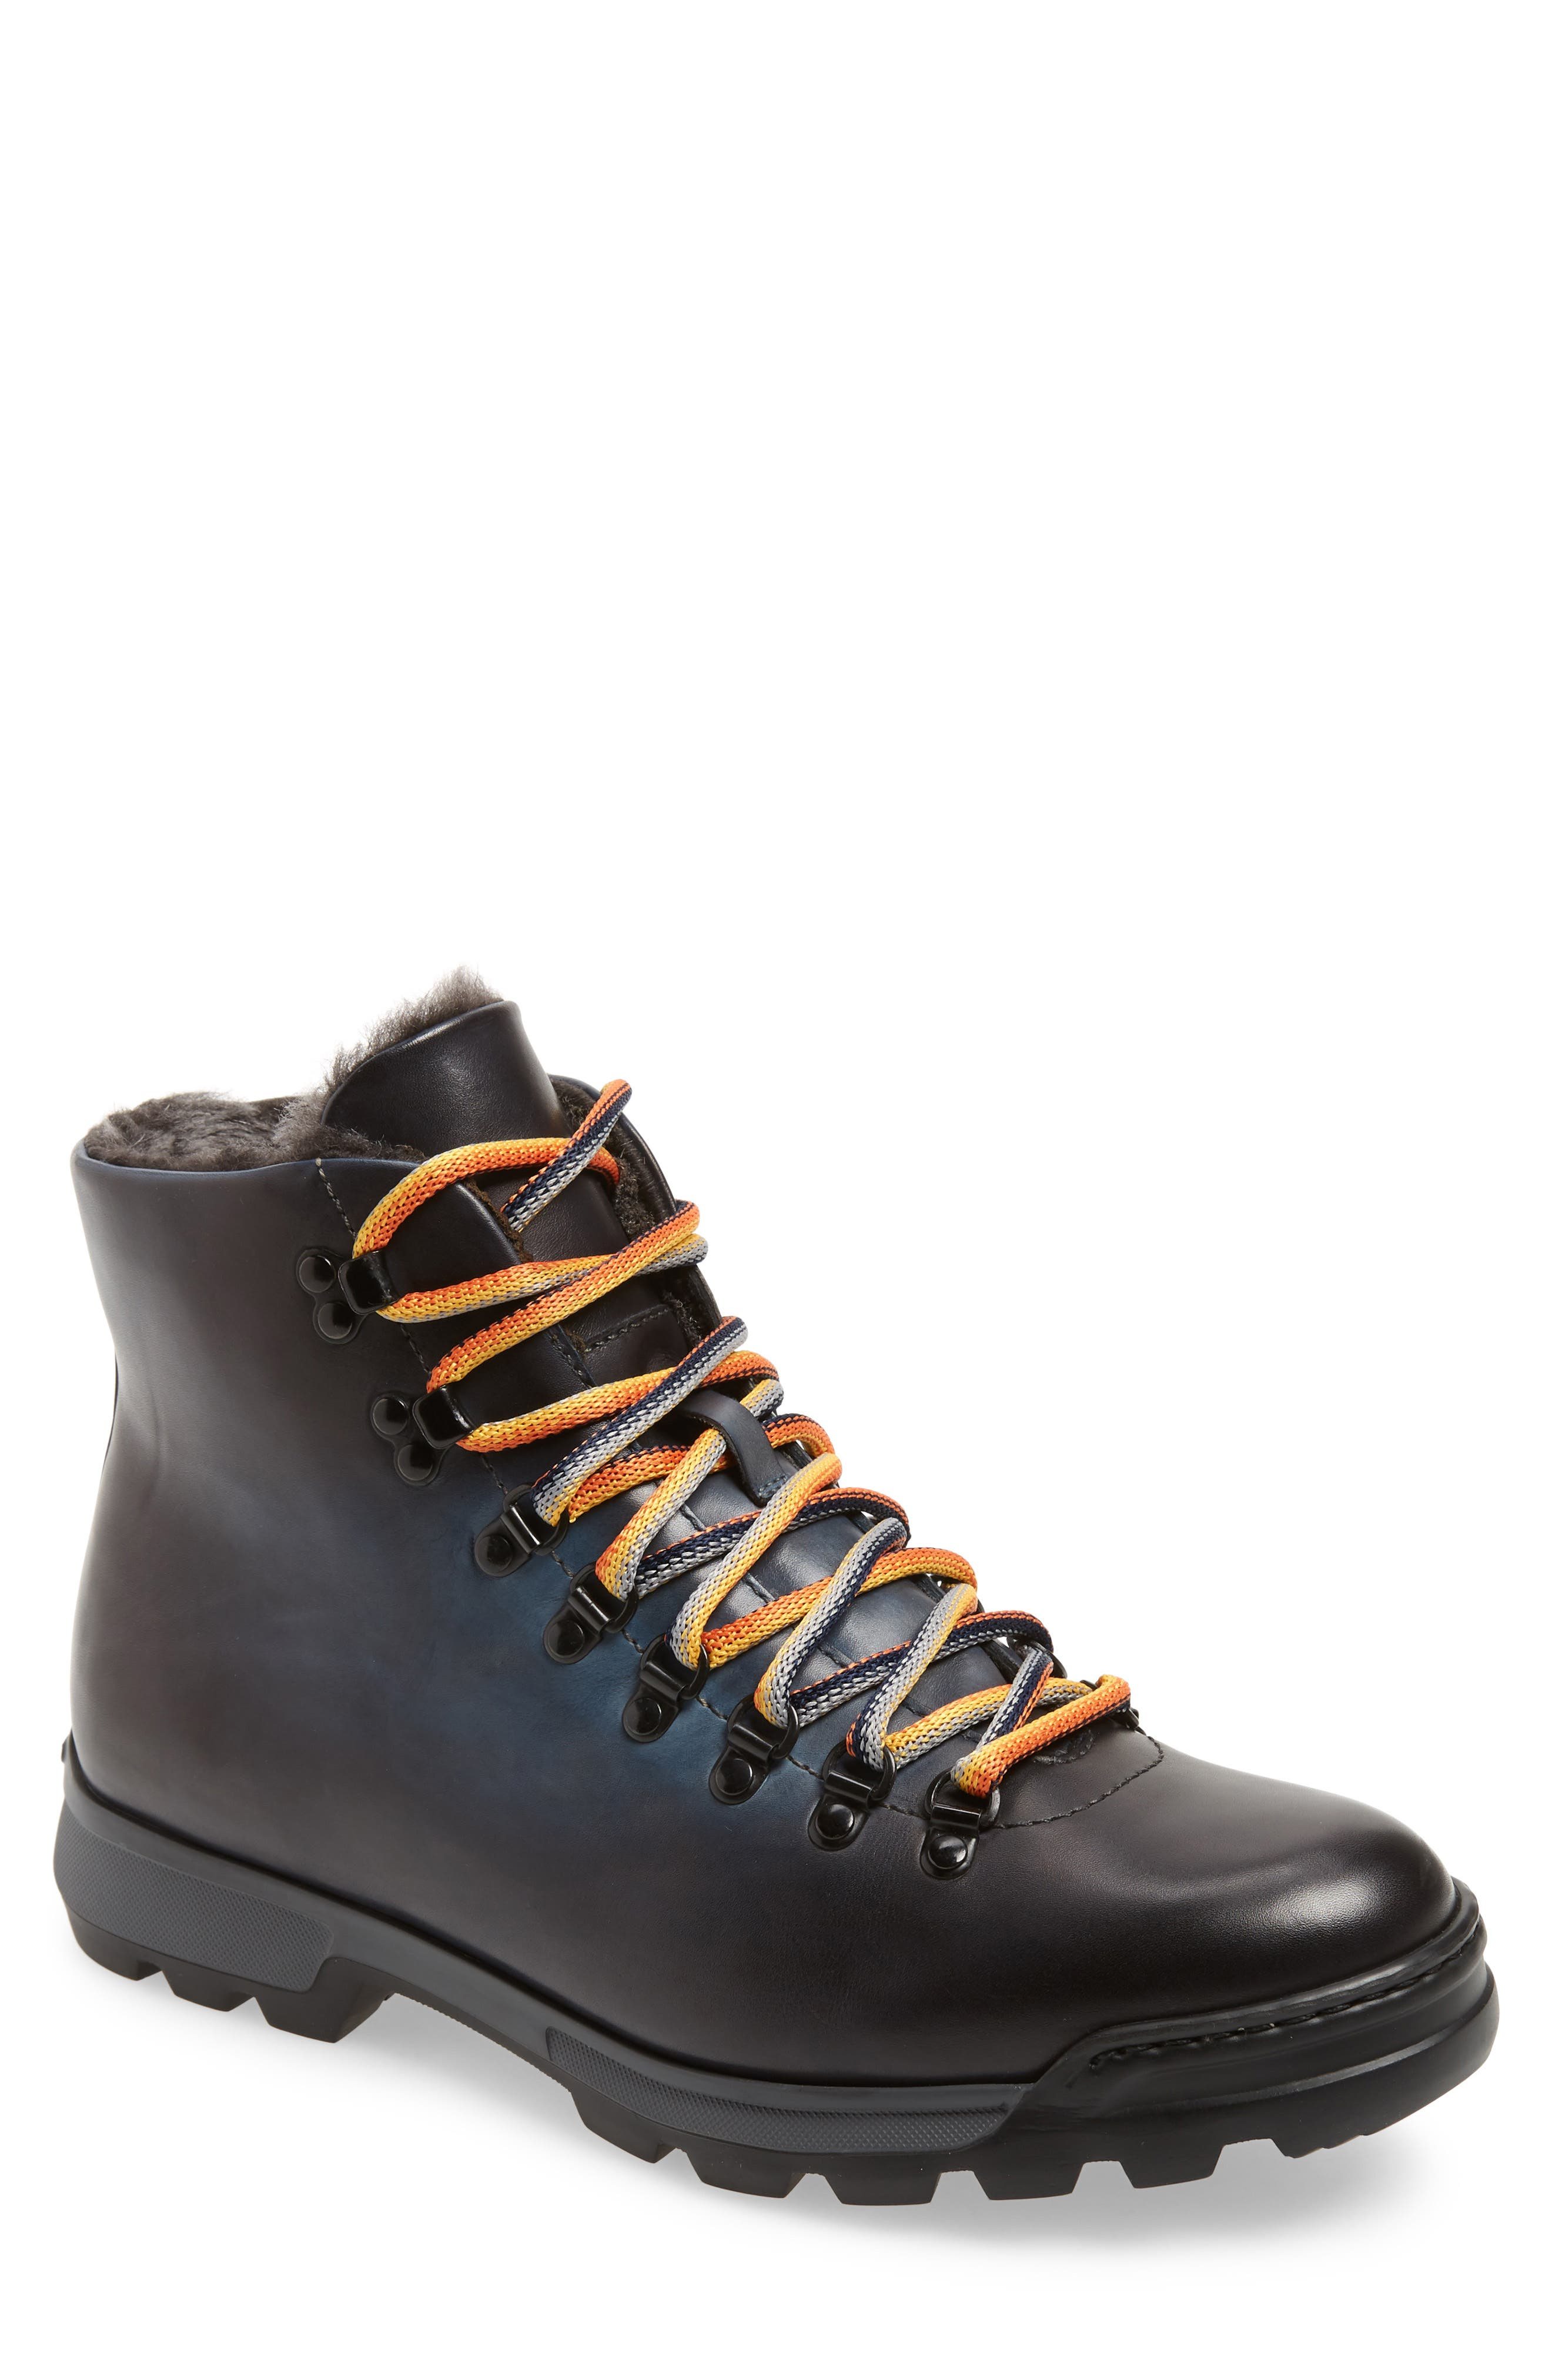 Oberon Genuine Shearling Lace-Up Hiking Boot,                             Main thumbnail 1, color,                             NAVY LEATHER